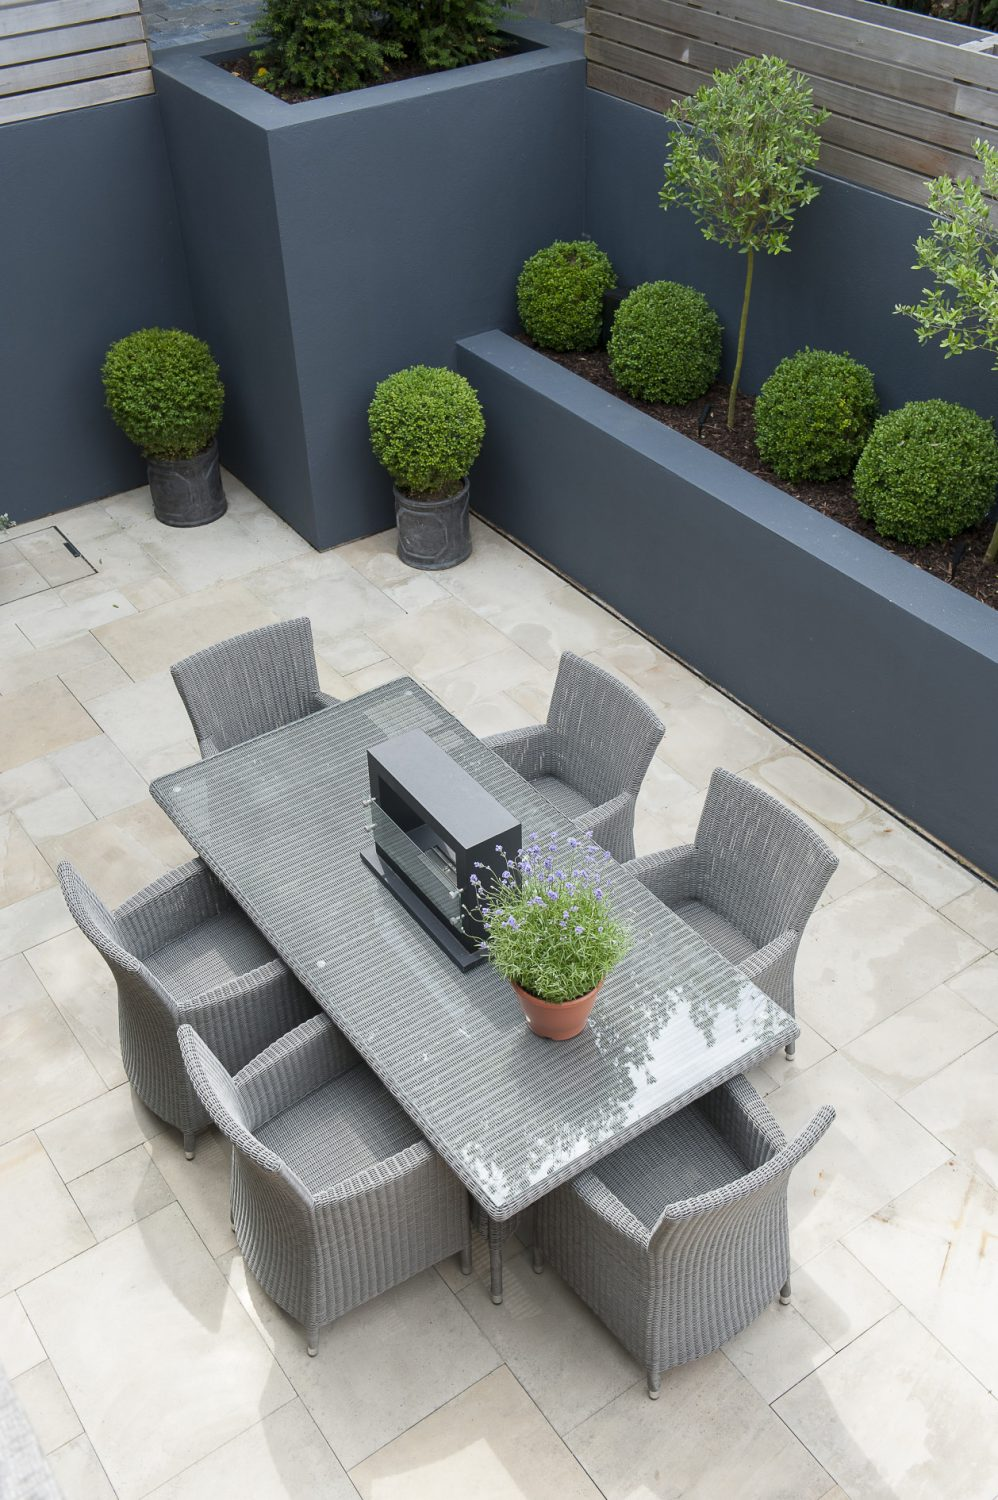 The outdoor dining space, perfect for entertaining